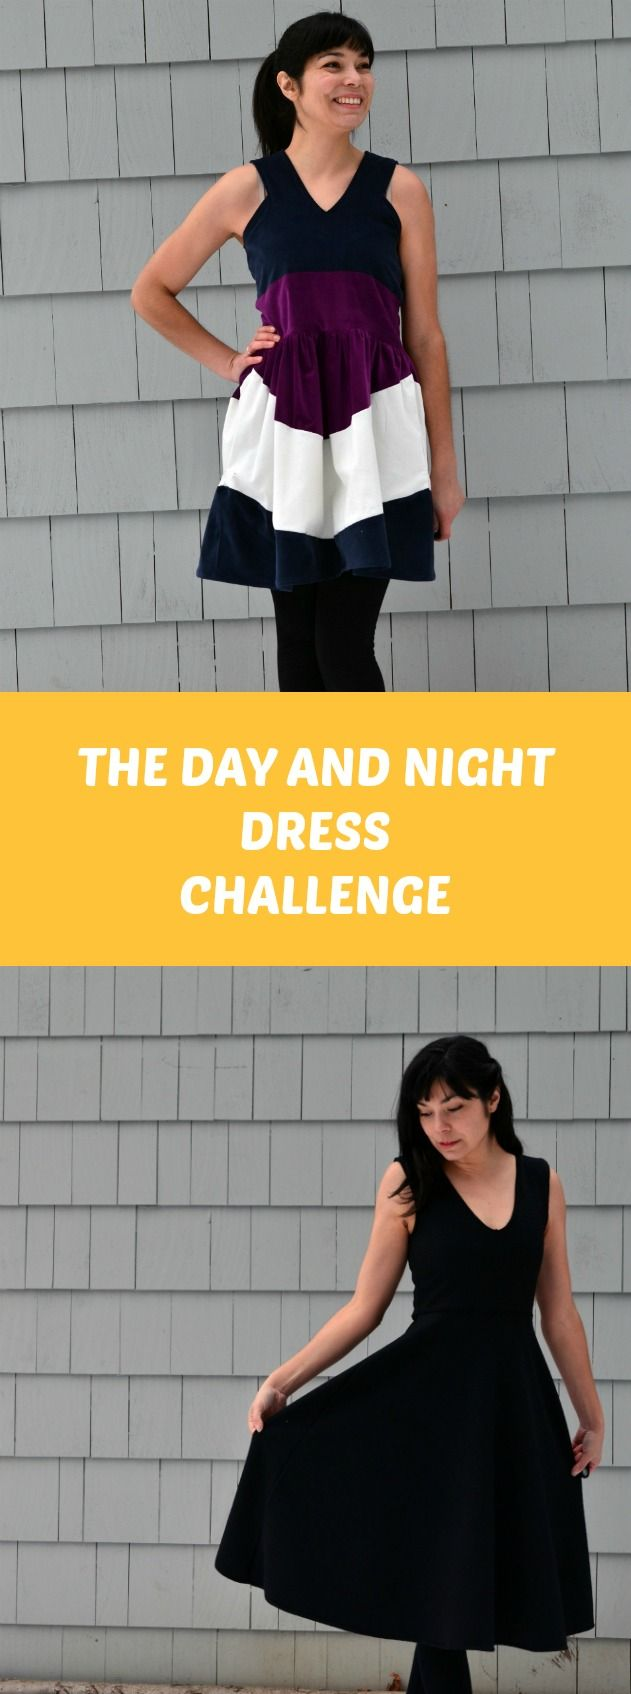 Day and Night Dress Challenge: Learn about the Day and night dress challenge and how you can join the fun!